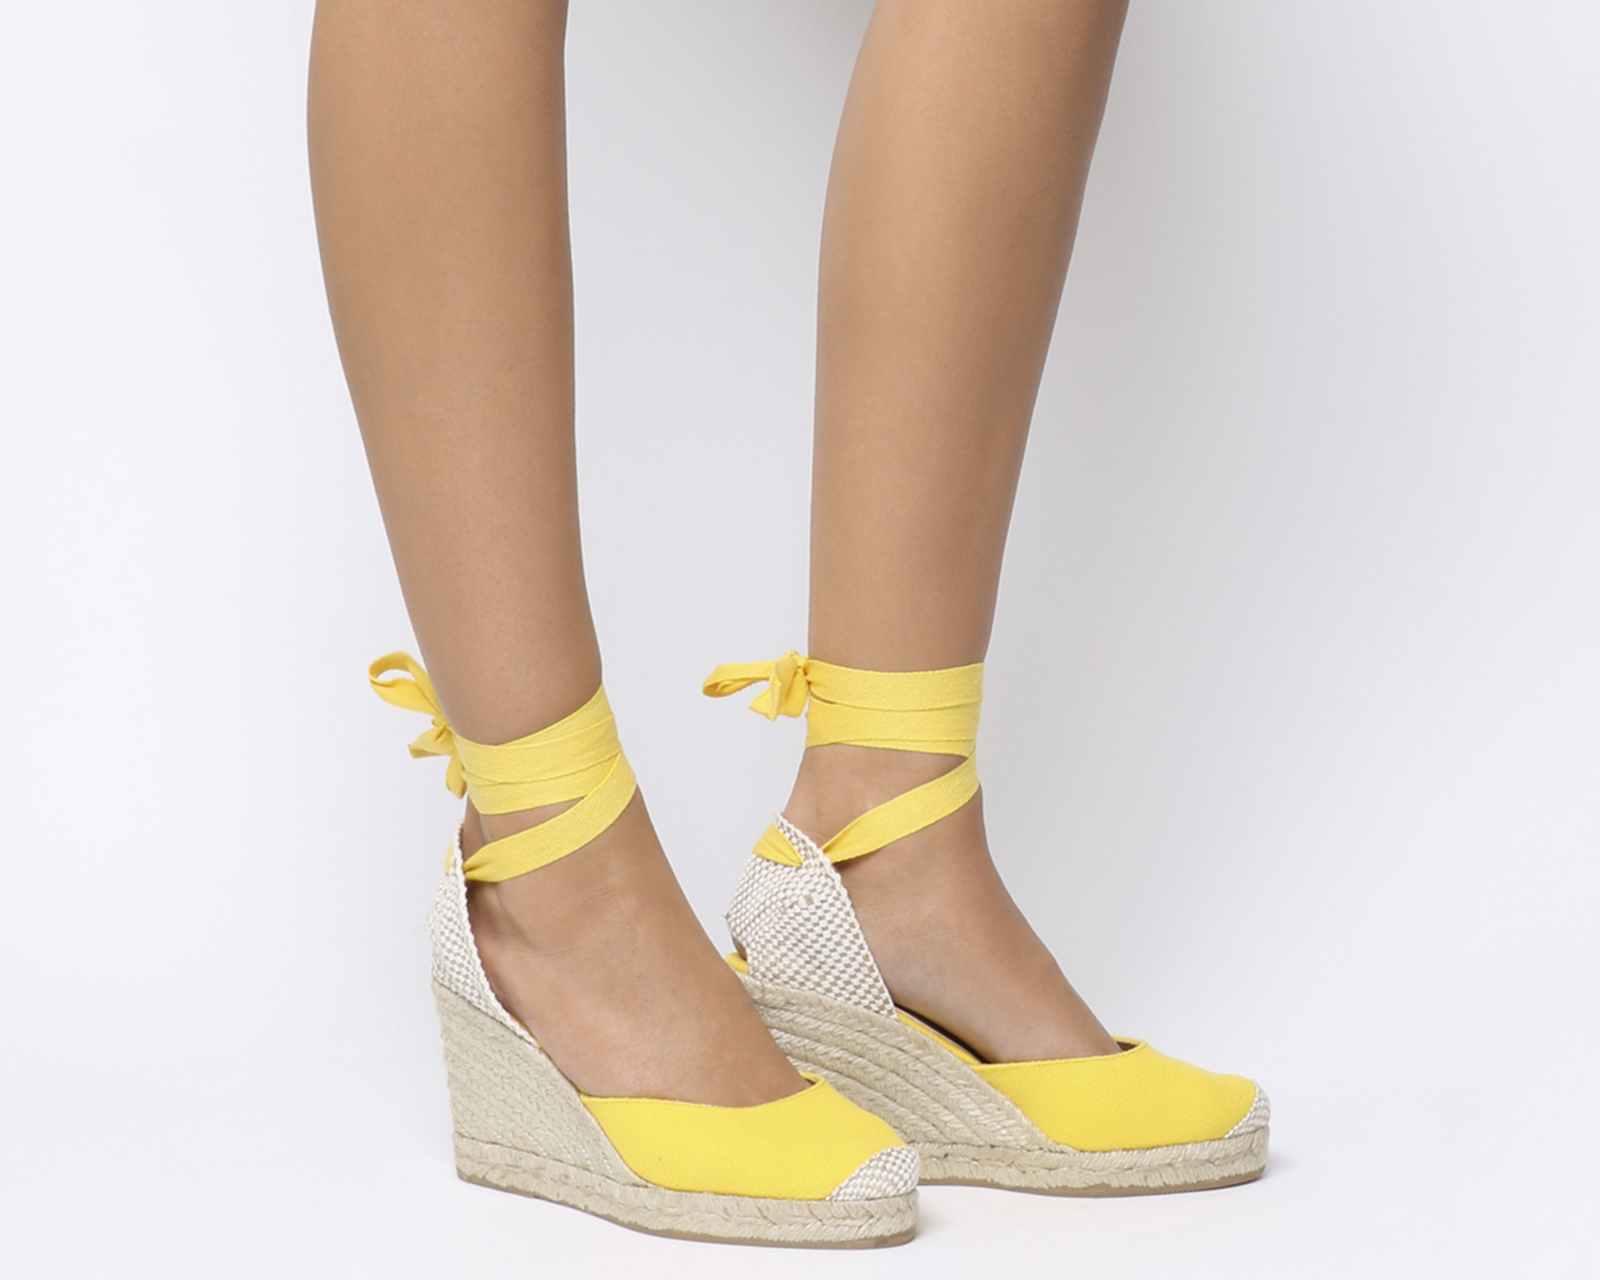 c17bf6c57f7 Details about Womens Office Marmalade Espadrille Wedges Yellow Canvas Heels